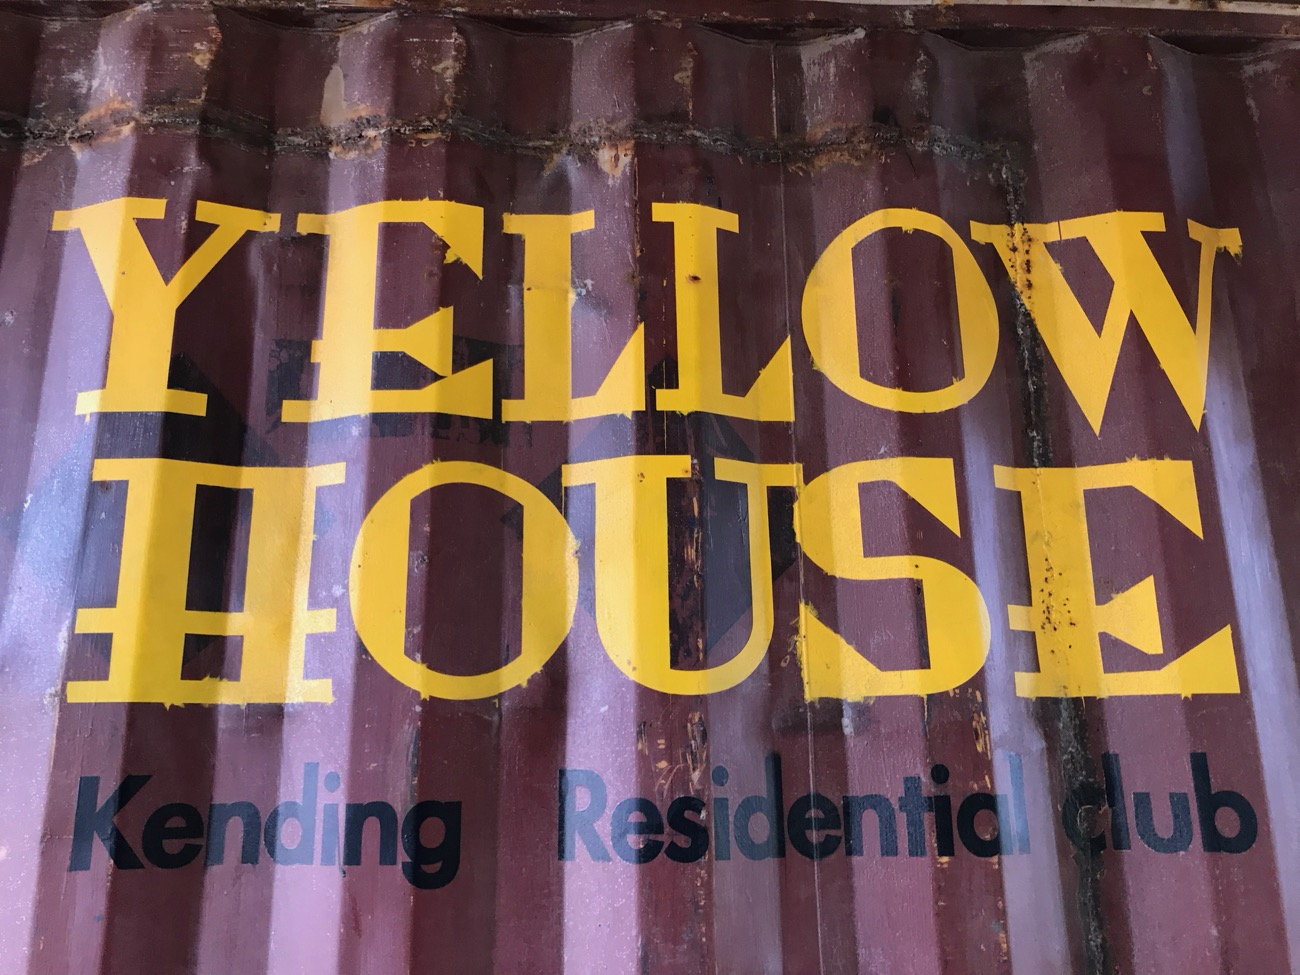 Yellow house hengchun logo